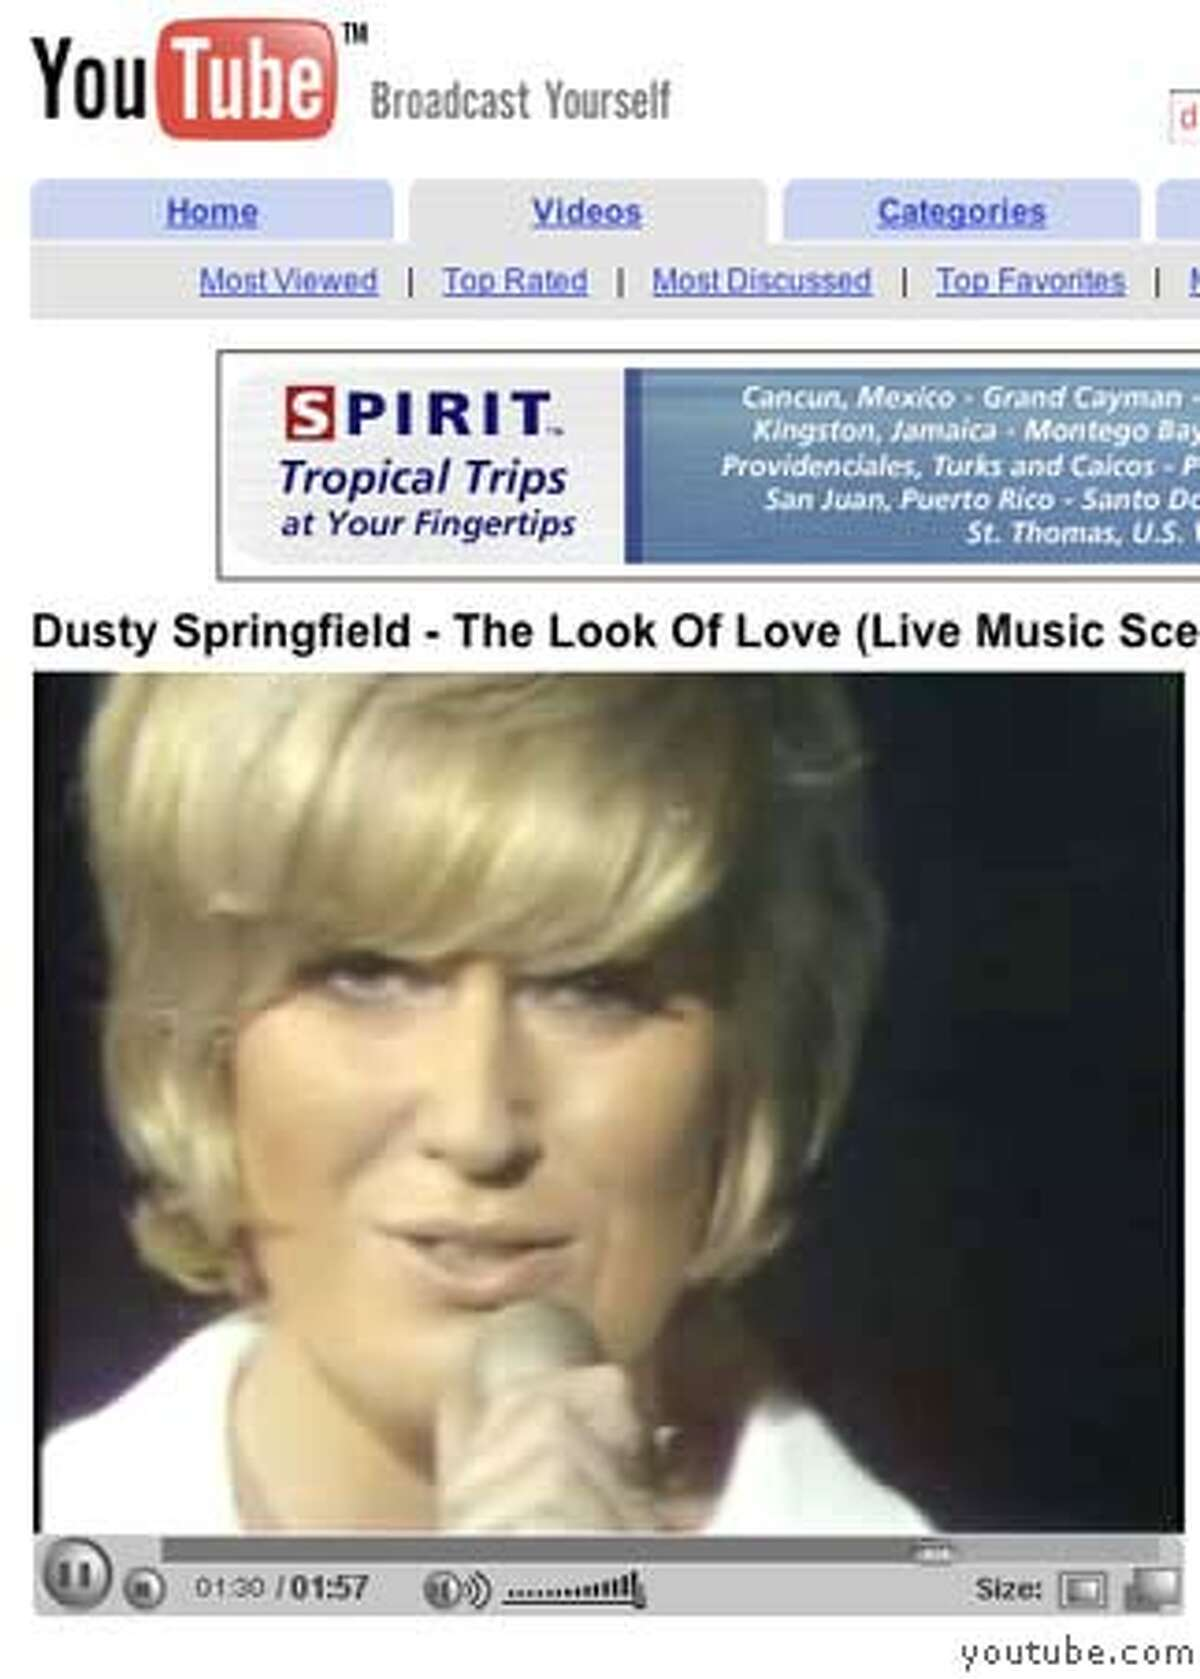 youtube24_052406_jmm018.JPG Dusty Springfield: �The Look Of Love� http://youtube.com/watch?v=TaoV3otcK-k&search=dusty%20springfield With little more than a closeup on her face, Dusty Springfield could still sell a song like nobody. These are screen grabs taken from the website youtube.com for a Joel Selvin story about the gems that can be found on the website. Event on 5/24/06 in San Francisco. Ran on: 05-30-2006 Hank Williams on The Kate Smith Show, his only known TV appearance. MANDATORY CREDIT FOR PHOTOG AND SAN FRANCISCO CHRONICLE/ -MAGS OUT